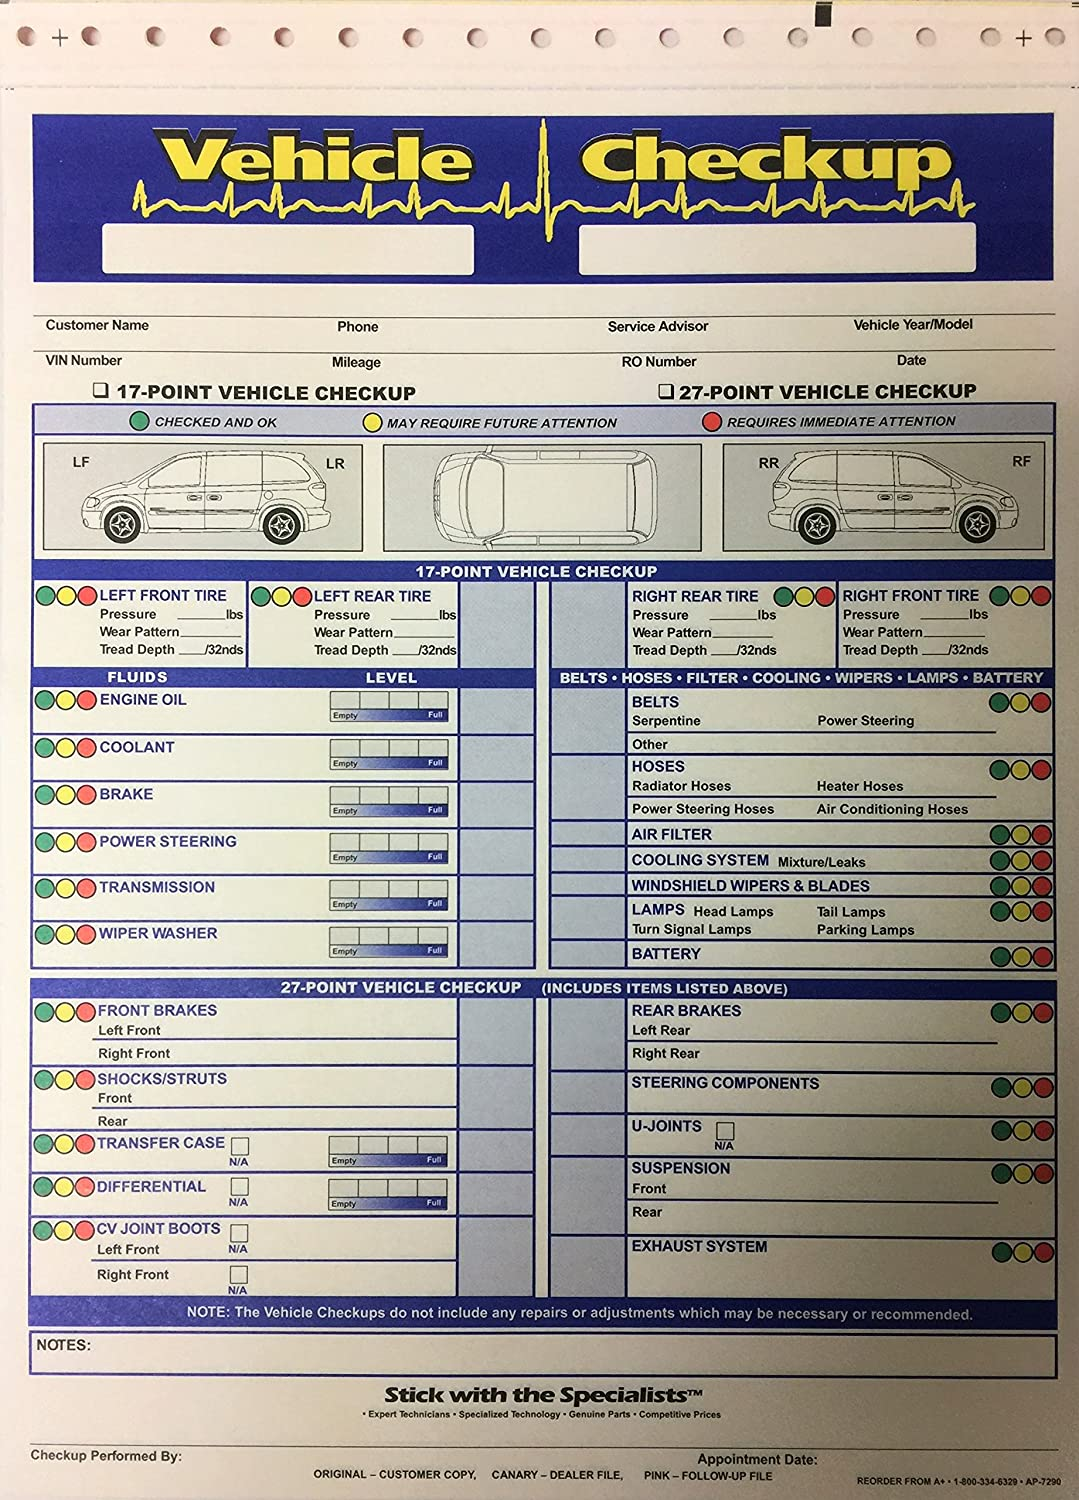 W2 Vehicle Check Up 3 Part Inspection Form 250 Quantity by A Plus